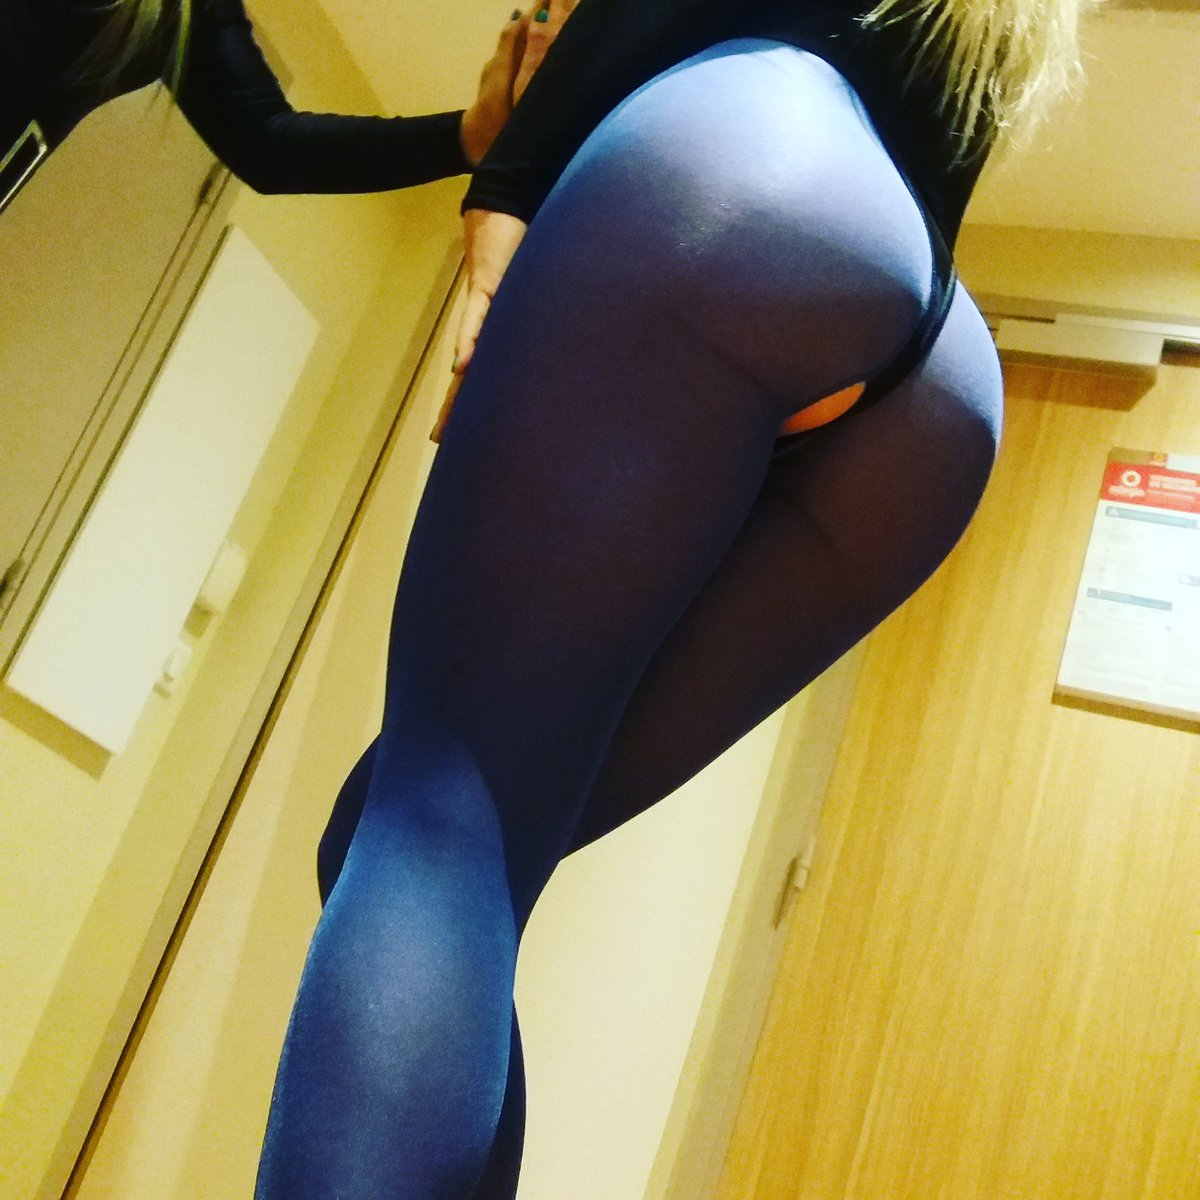 For the big booty lovers from Paris😘😘😘😘 Jznfoi29vS